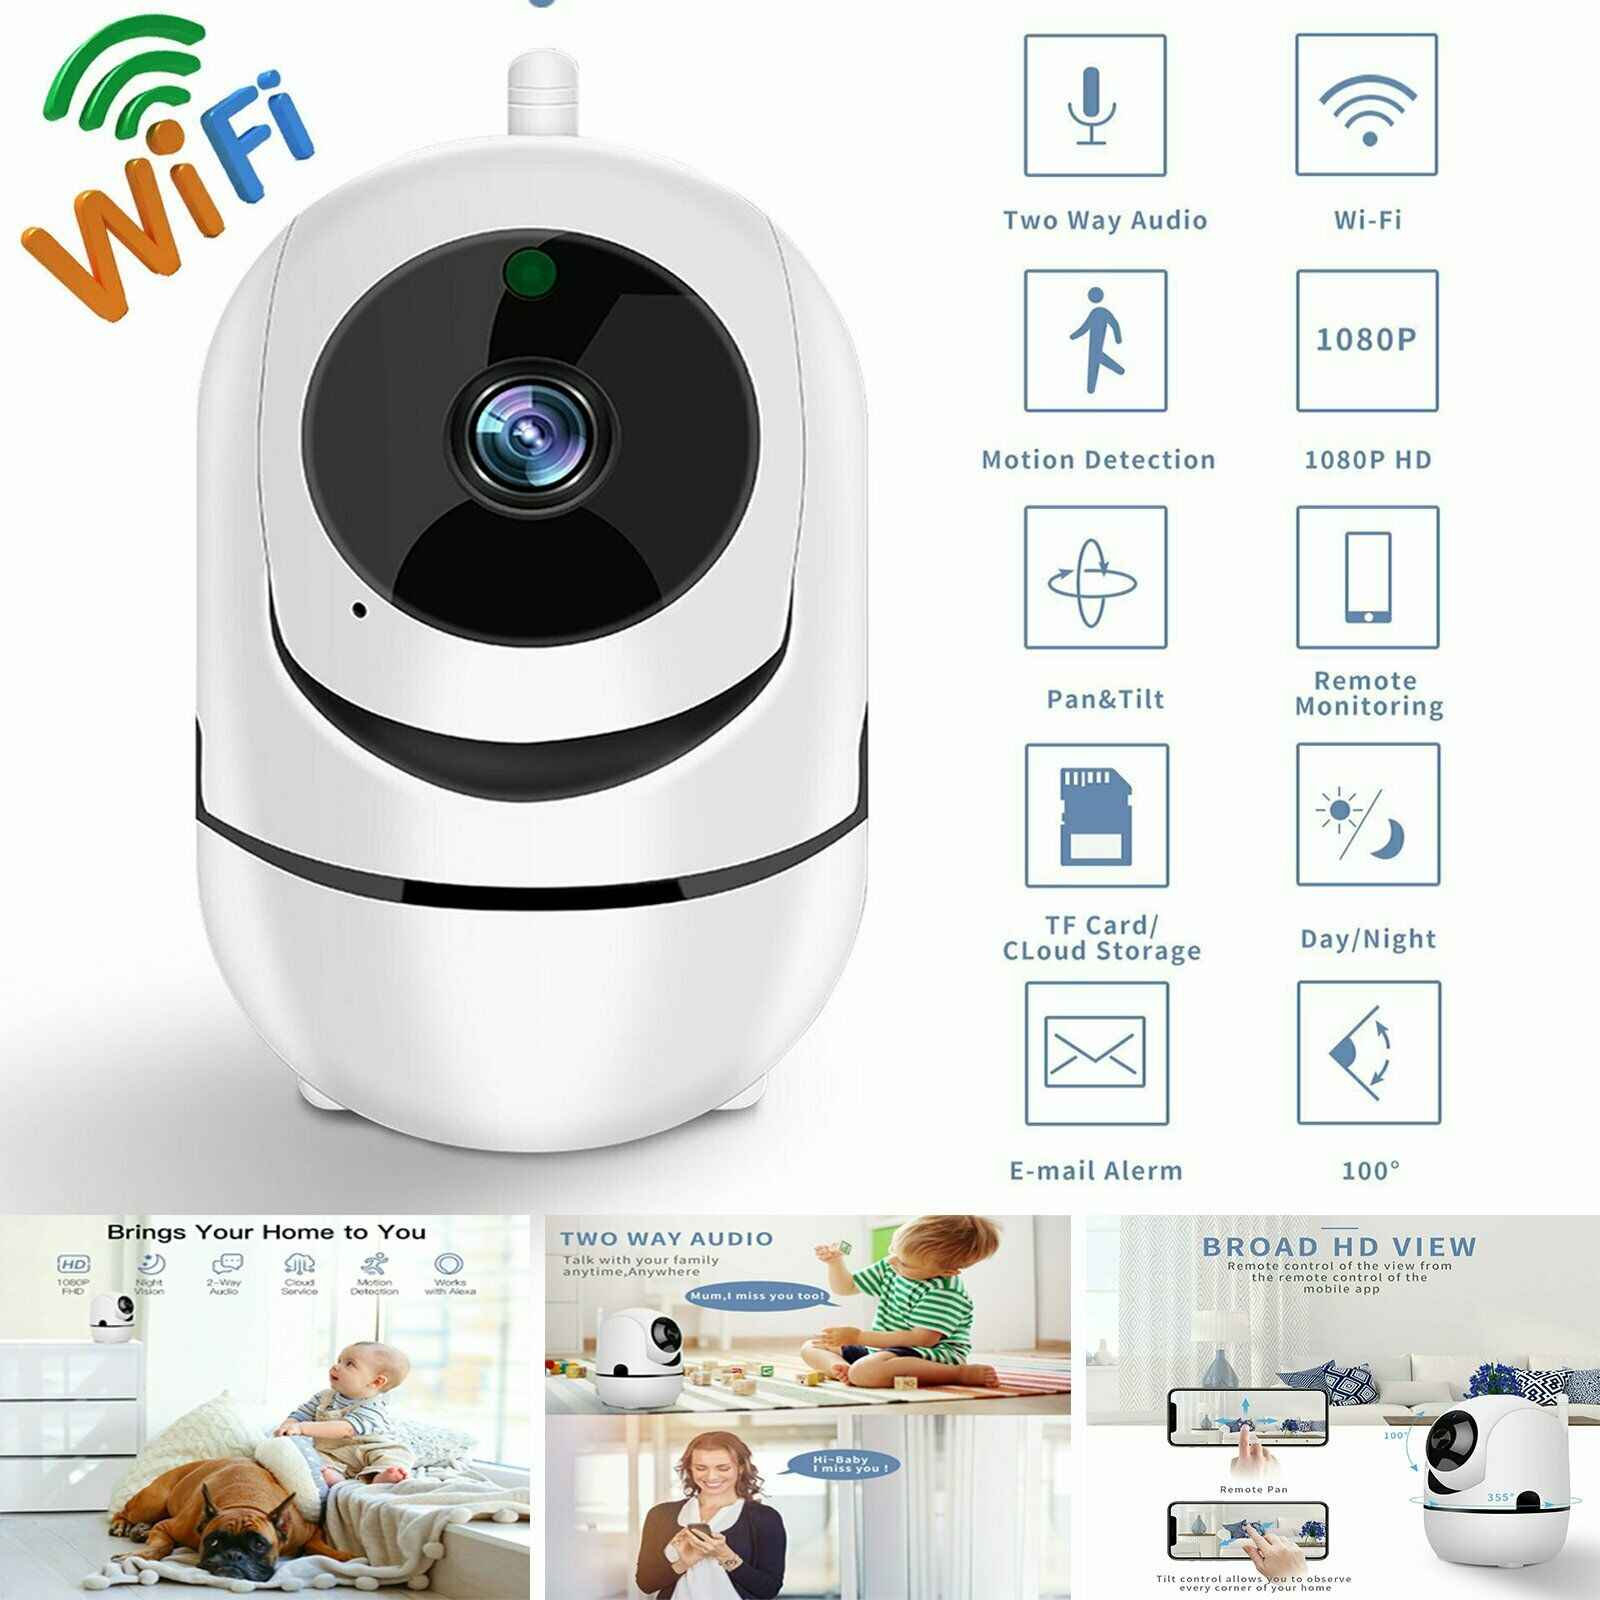 1080P HD Wireless WiFi Pan/TILT IP Security กล้อง Night Vision Baby/PET Monitor